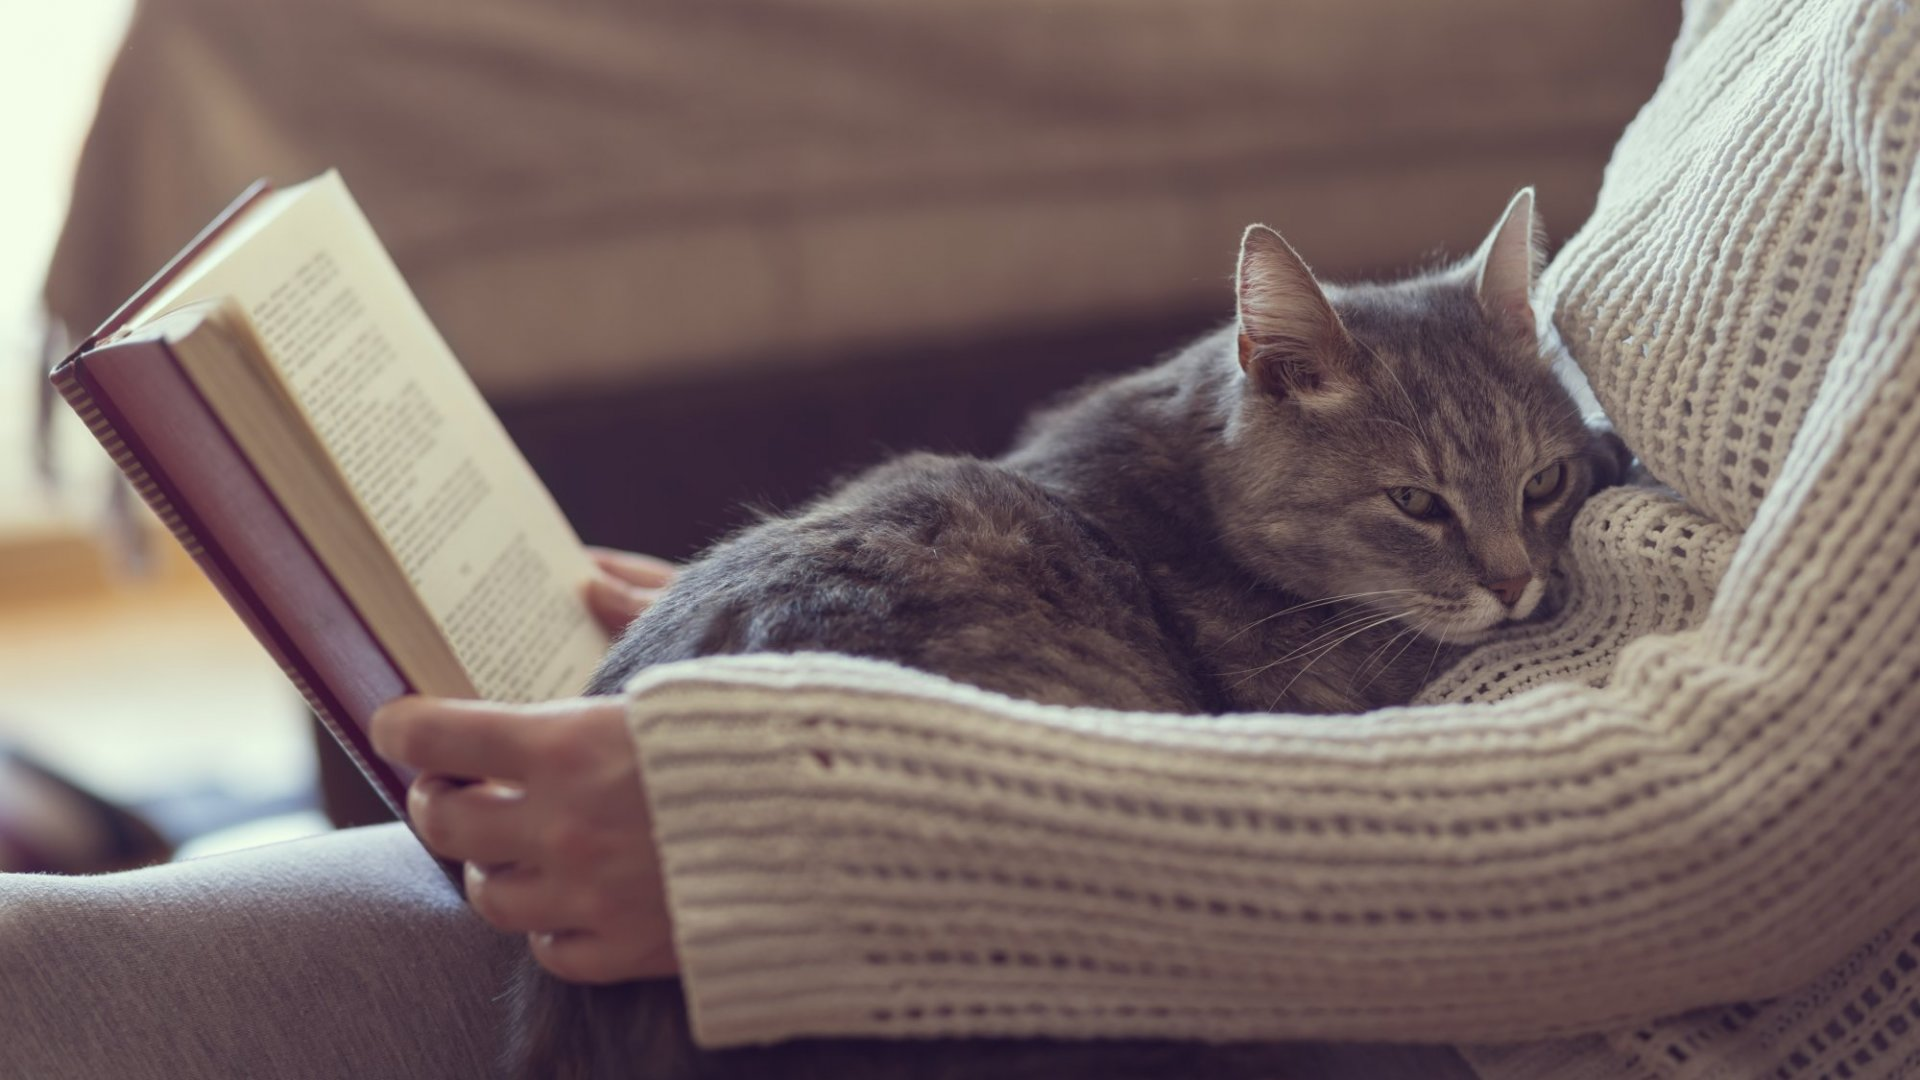 New Study: Reading Fiction Really Will Make You Nicer and More Empathetic